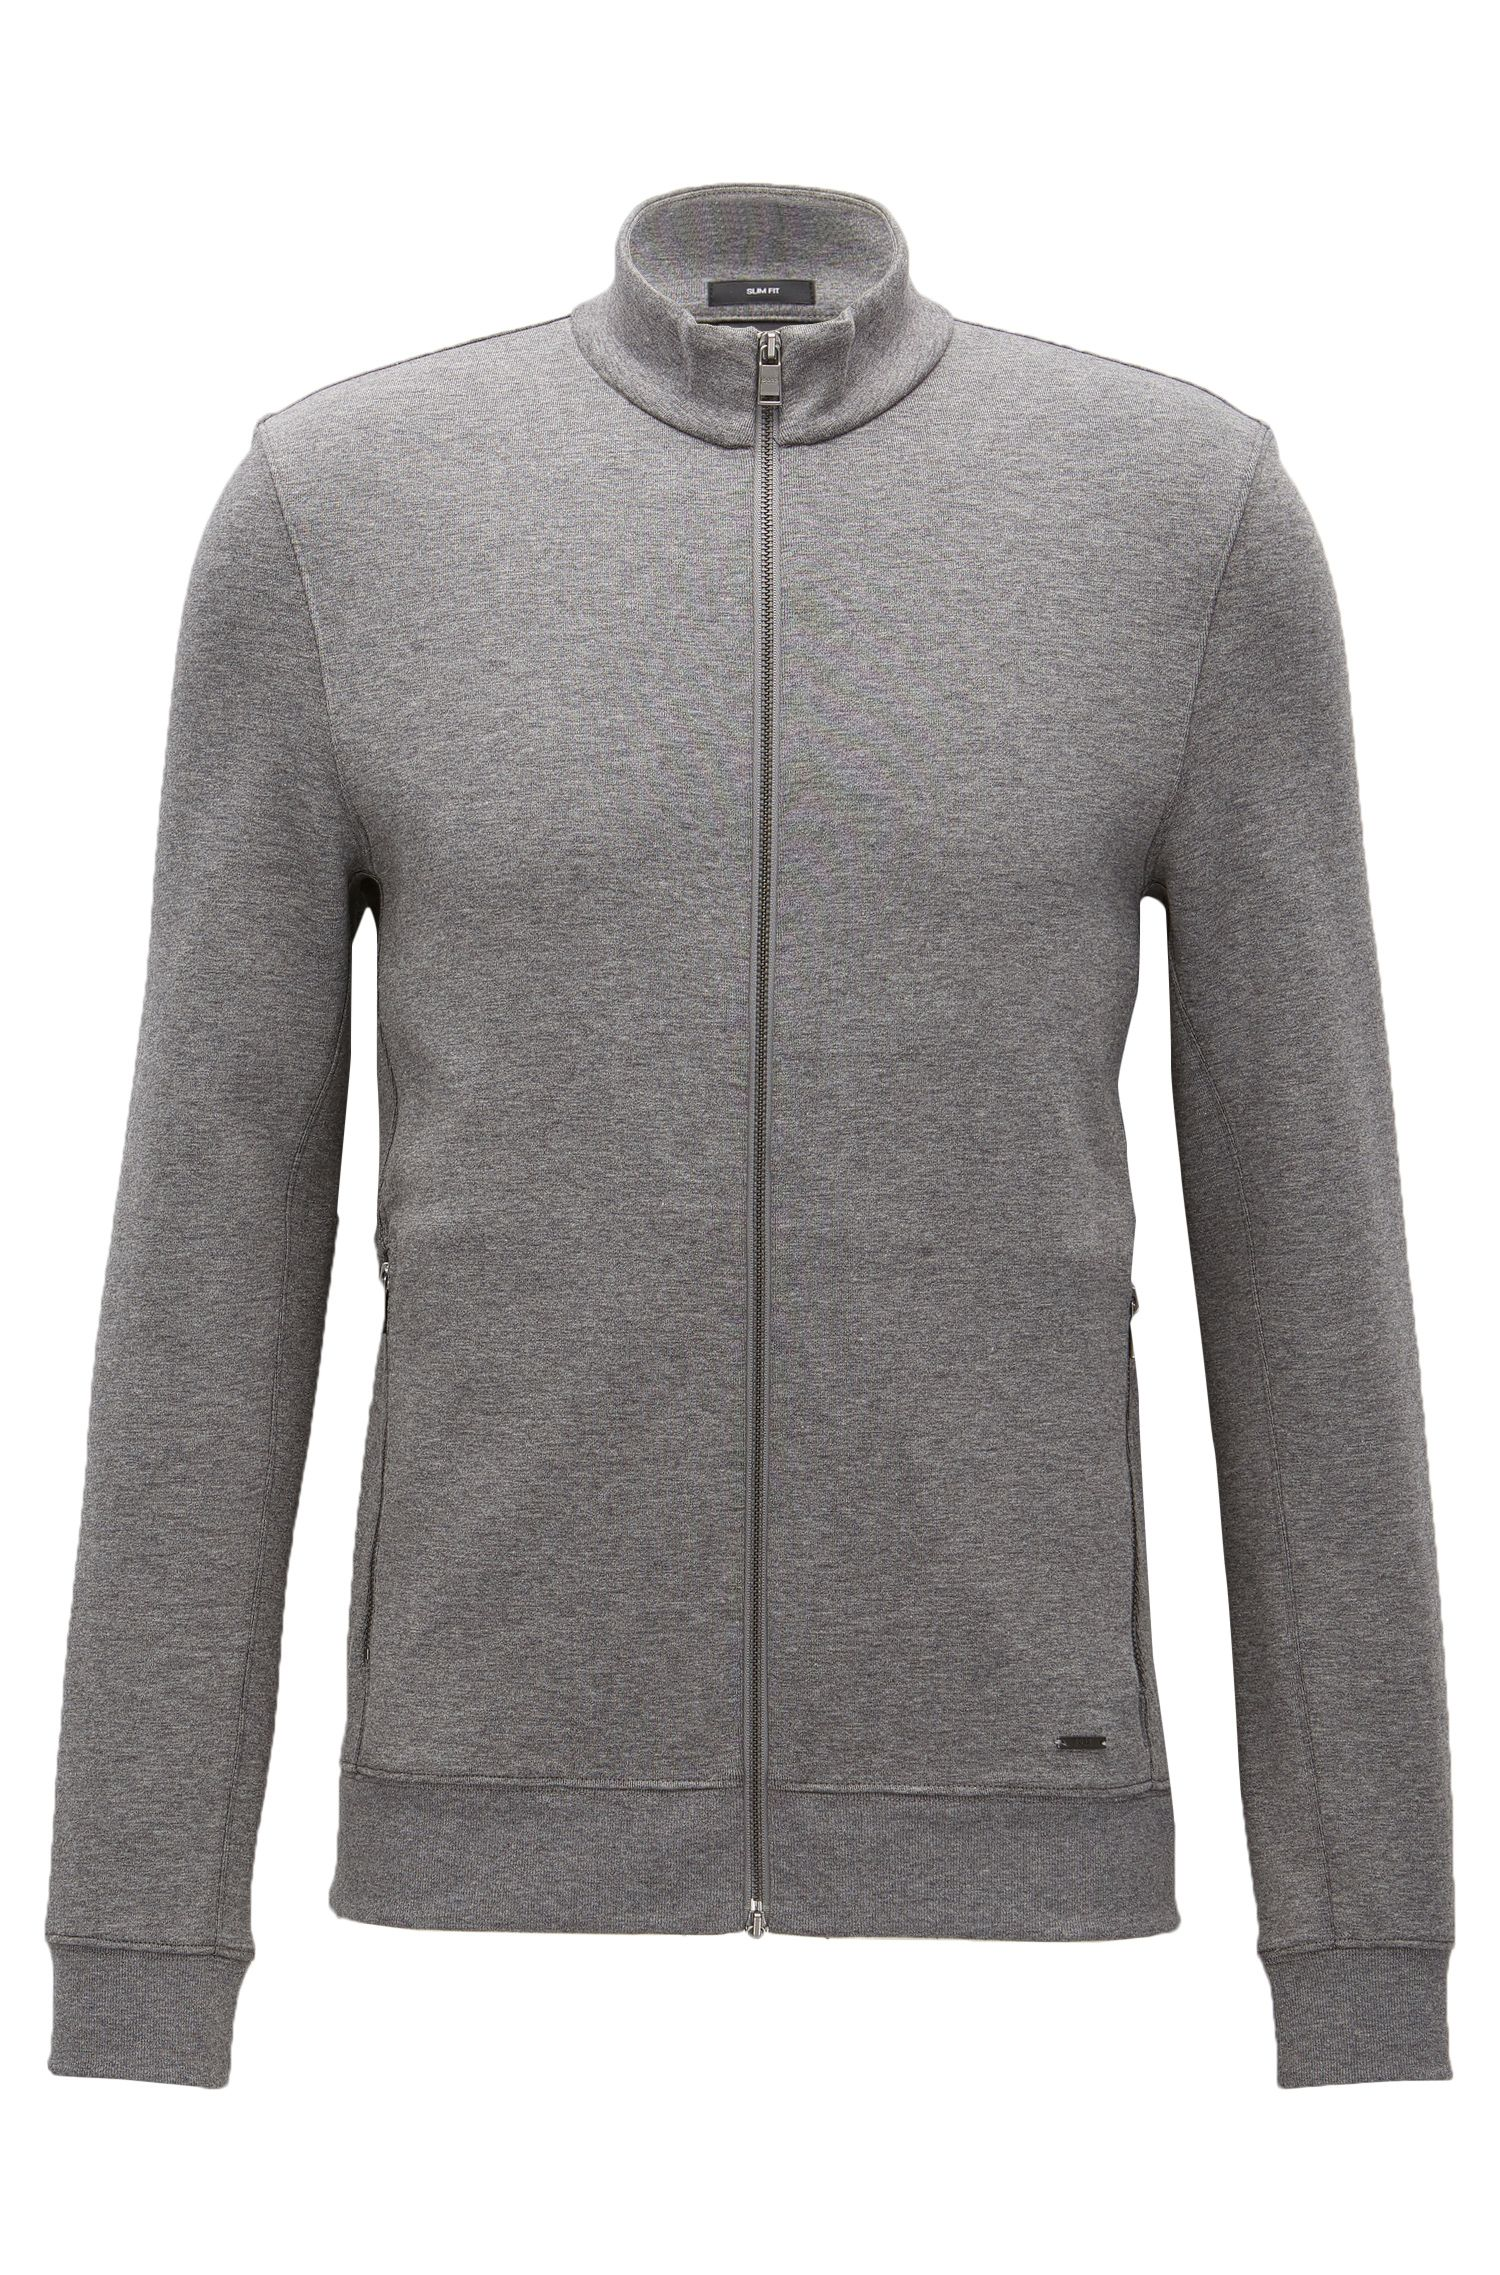 'Soule' | Stretch Cotton Nylon Zip Sweat Jacket